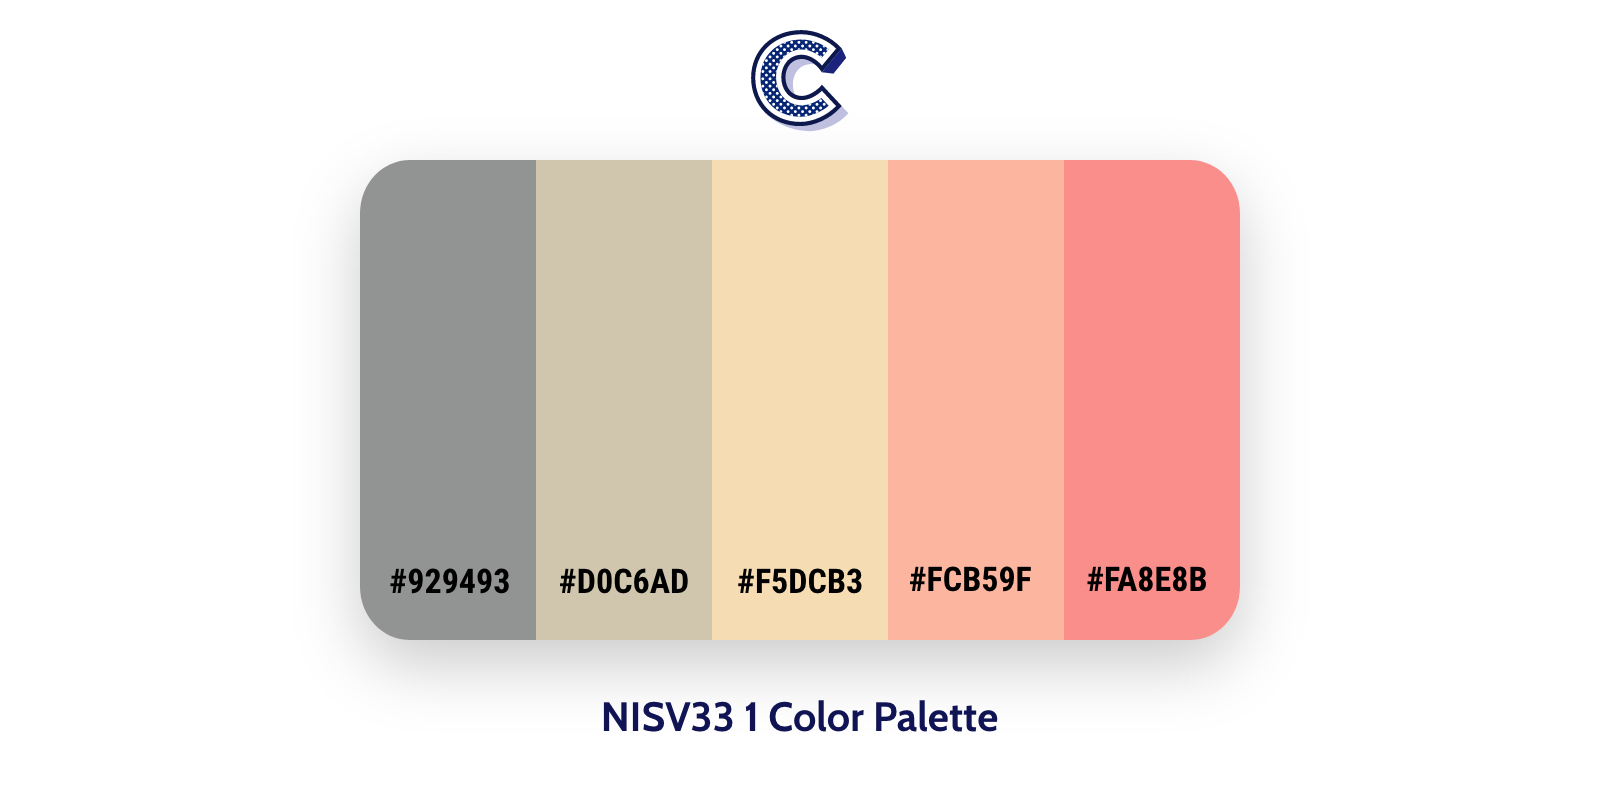 the featured image of NISV33 1 color palette